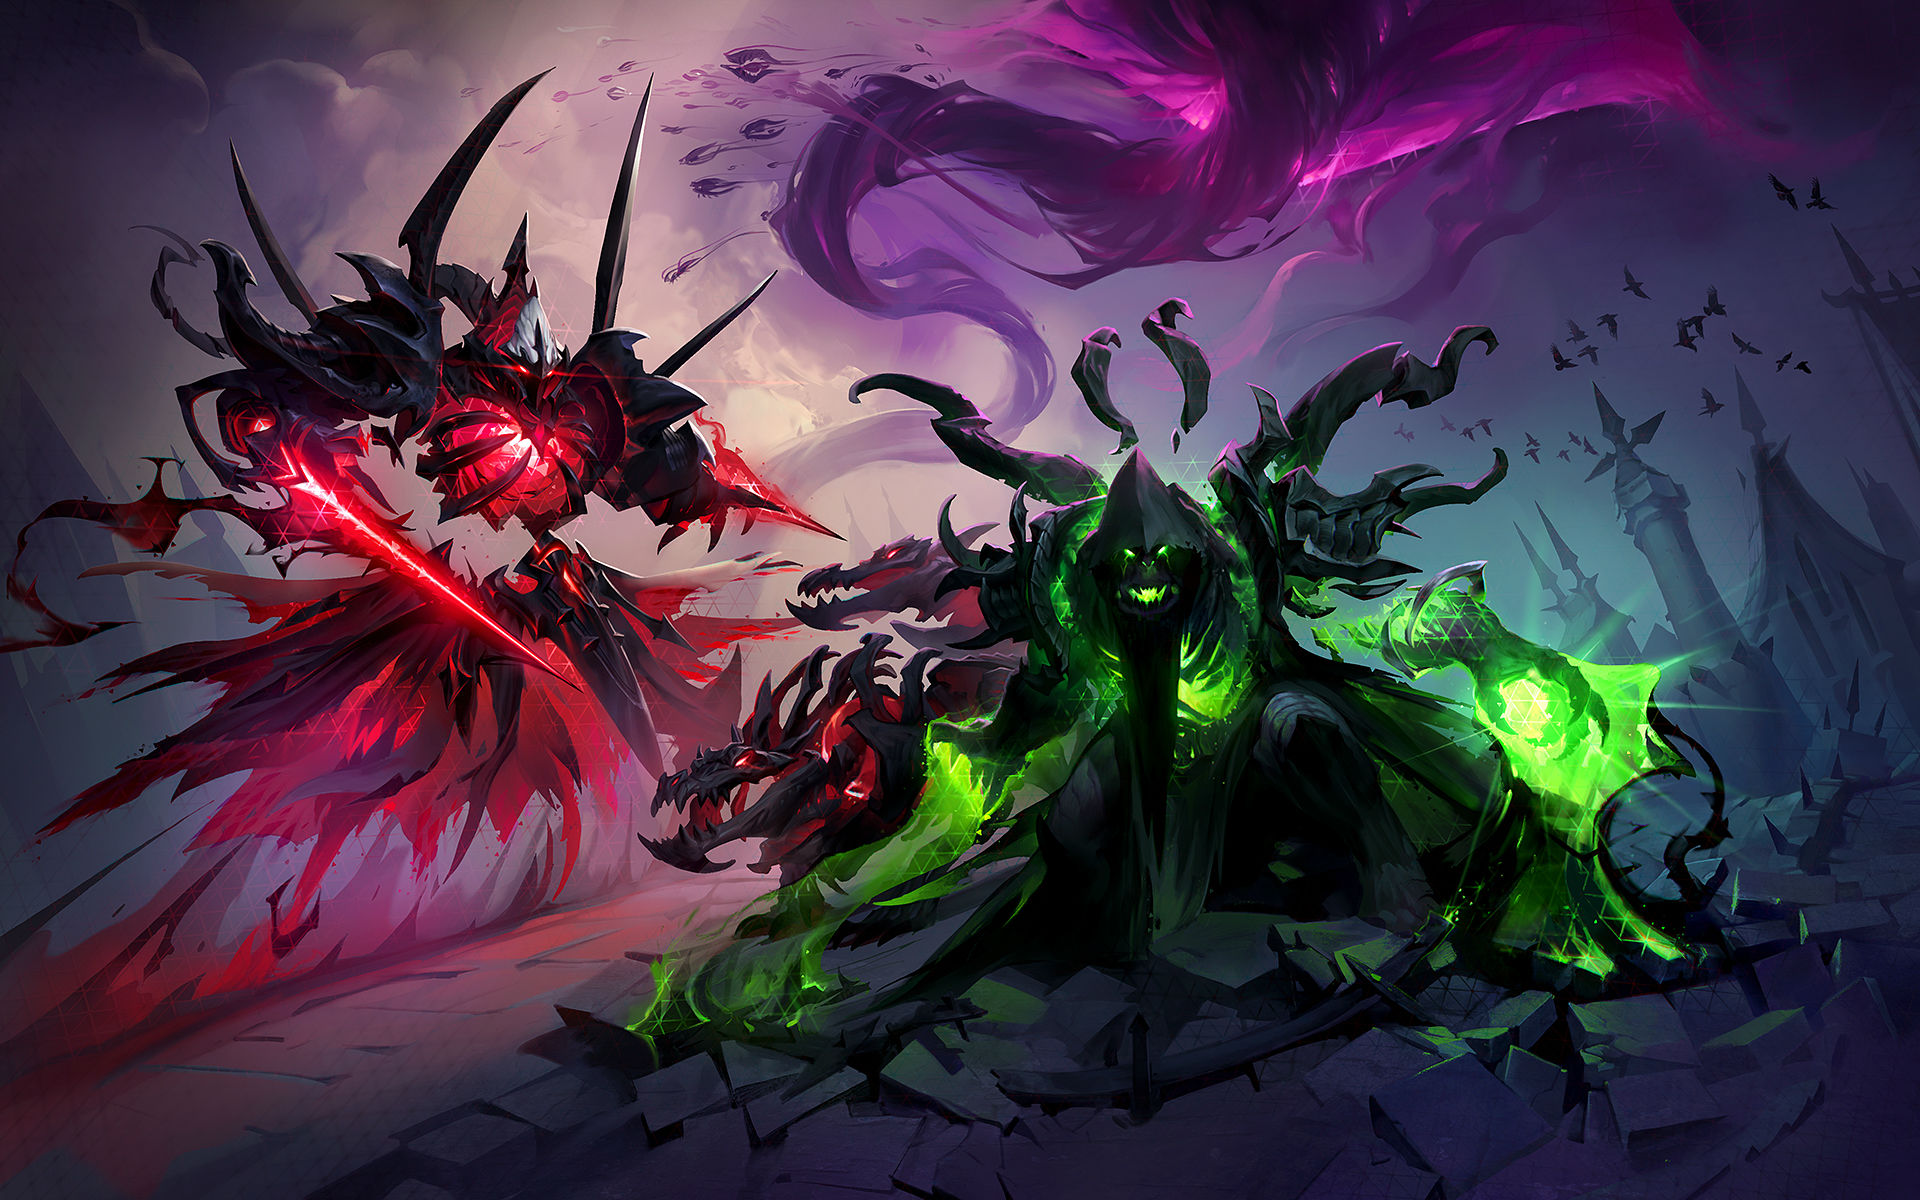 Here's a quick look at the new storyline coming to Heroes of the Storm screenshot